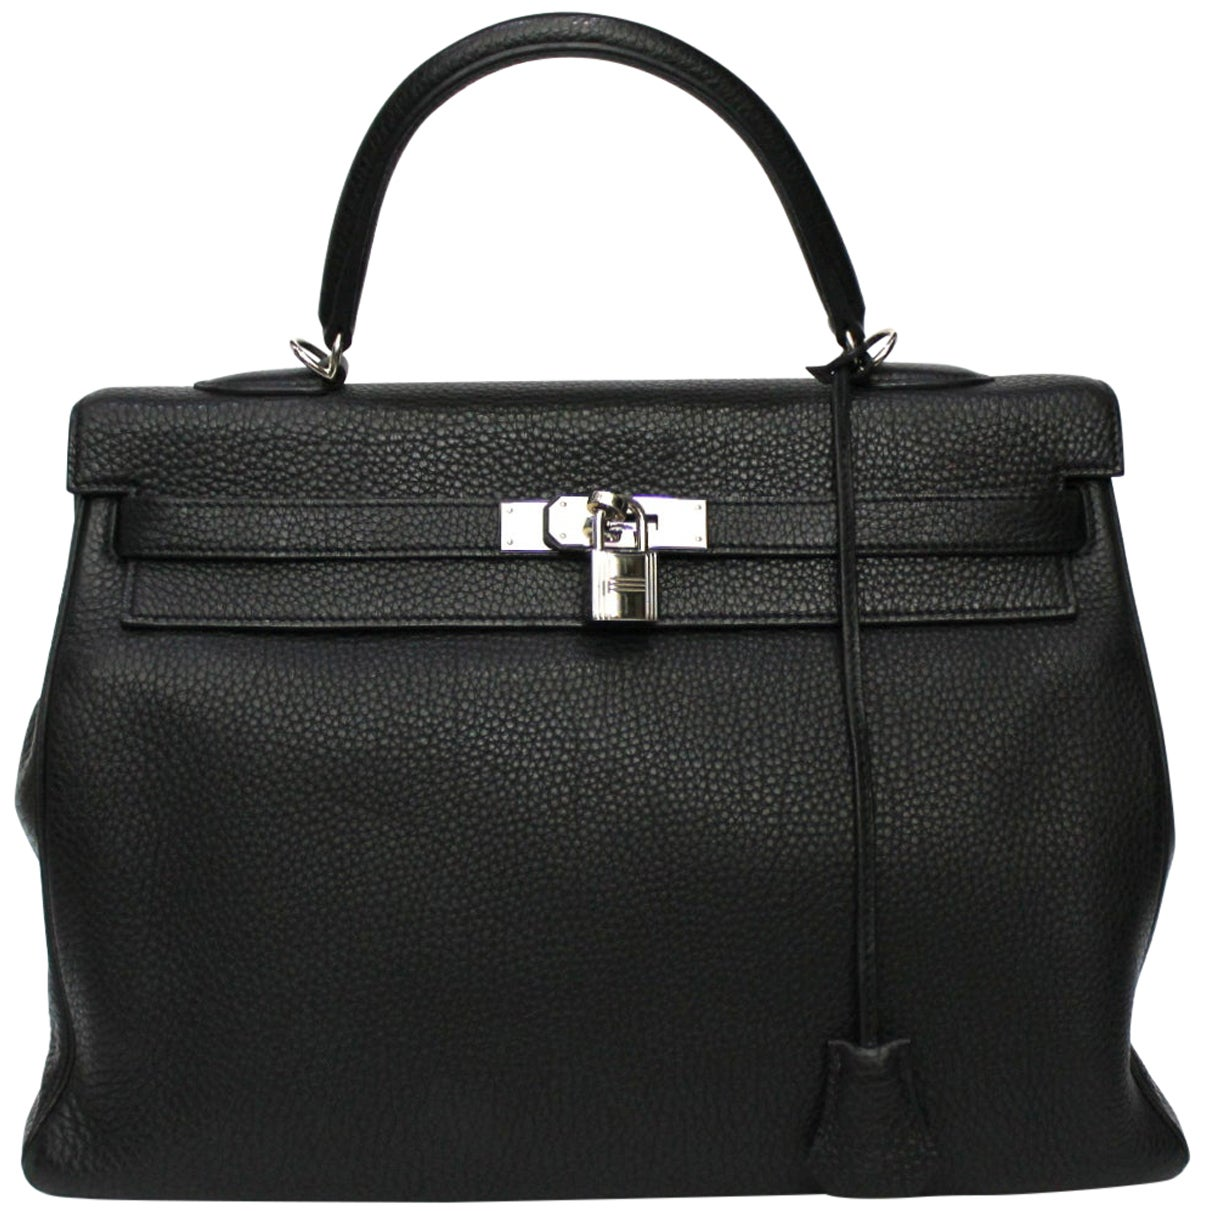 2012 Hermès Noir Leather Kelly Bag